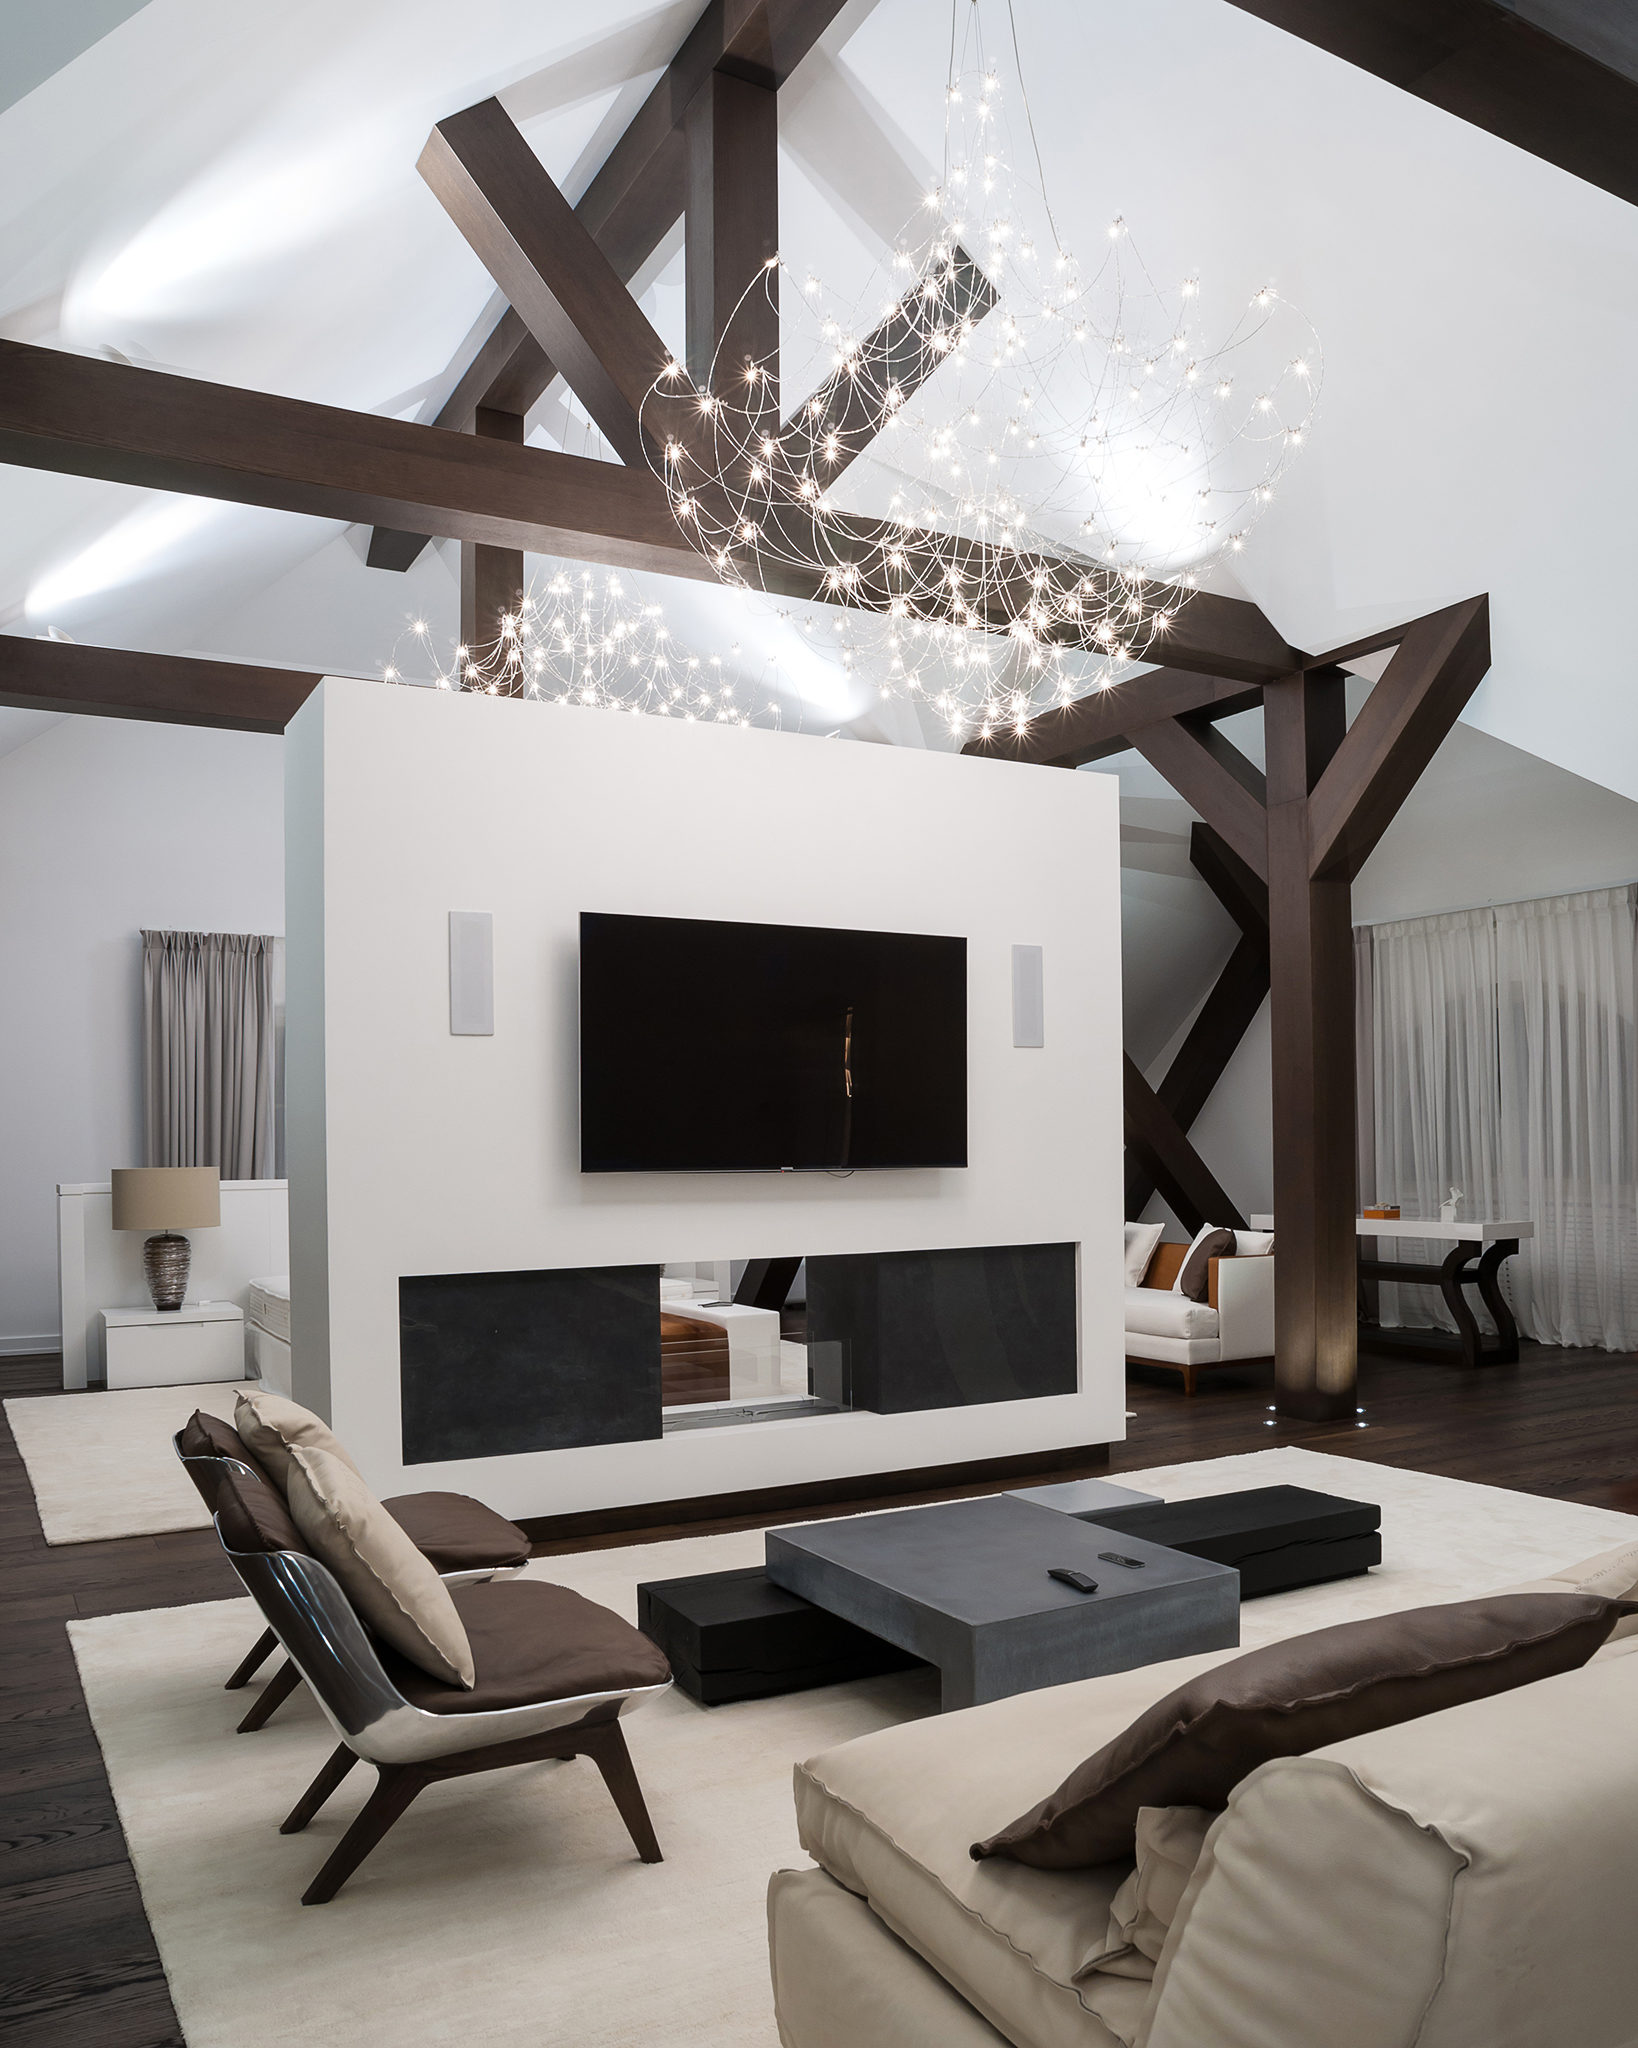 Interior photography of a living room in a large house